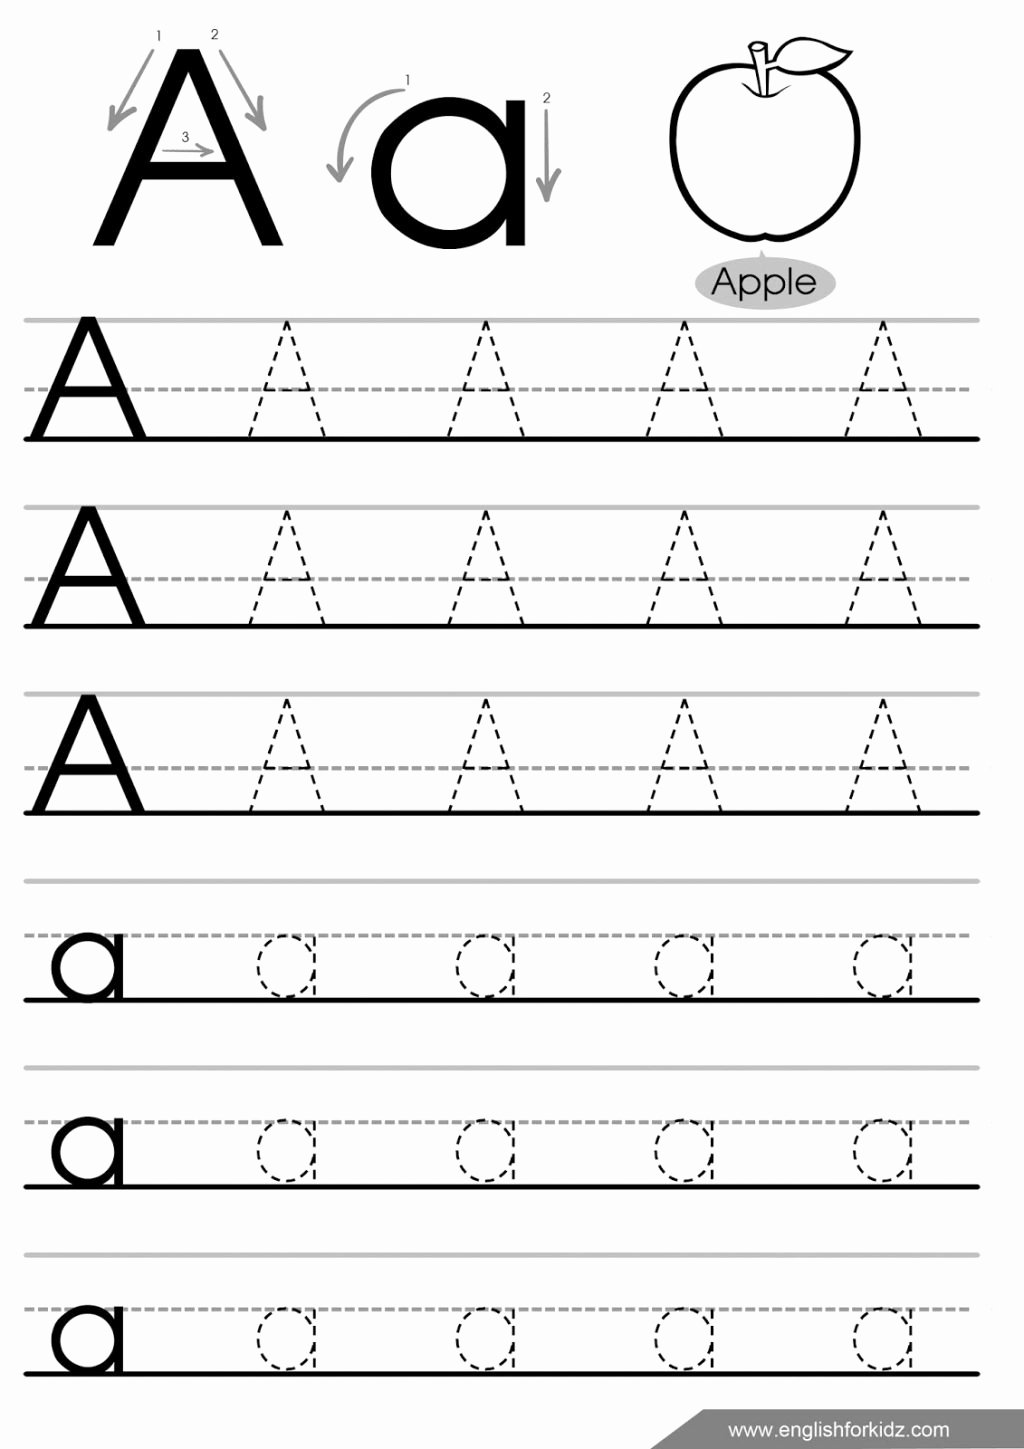 Worksheets for Preschoolers Tracing Letters Printable Worksheet Stunning Printable Letter Tracing Letters to